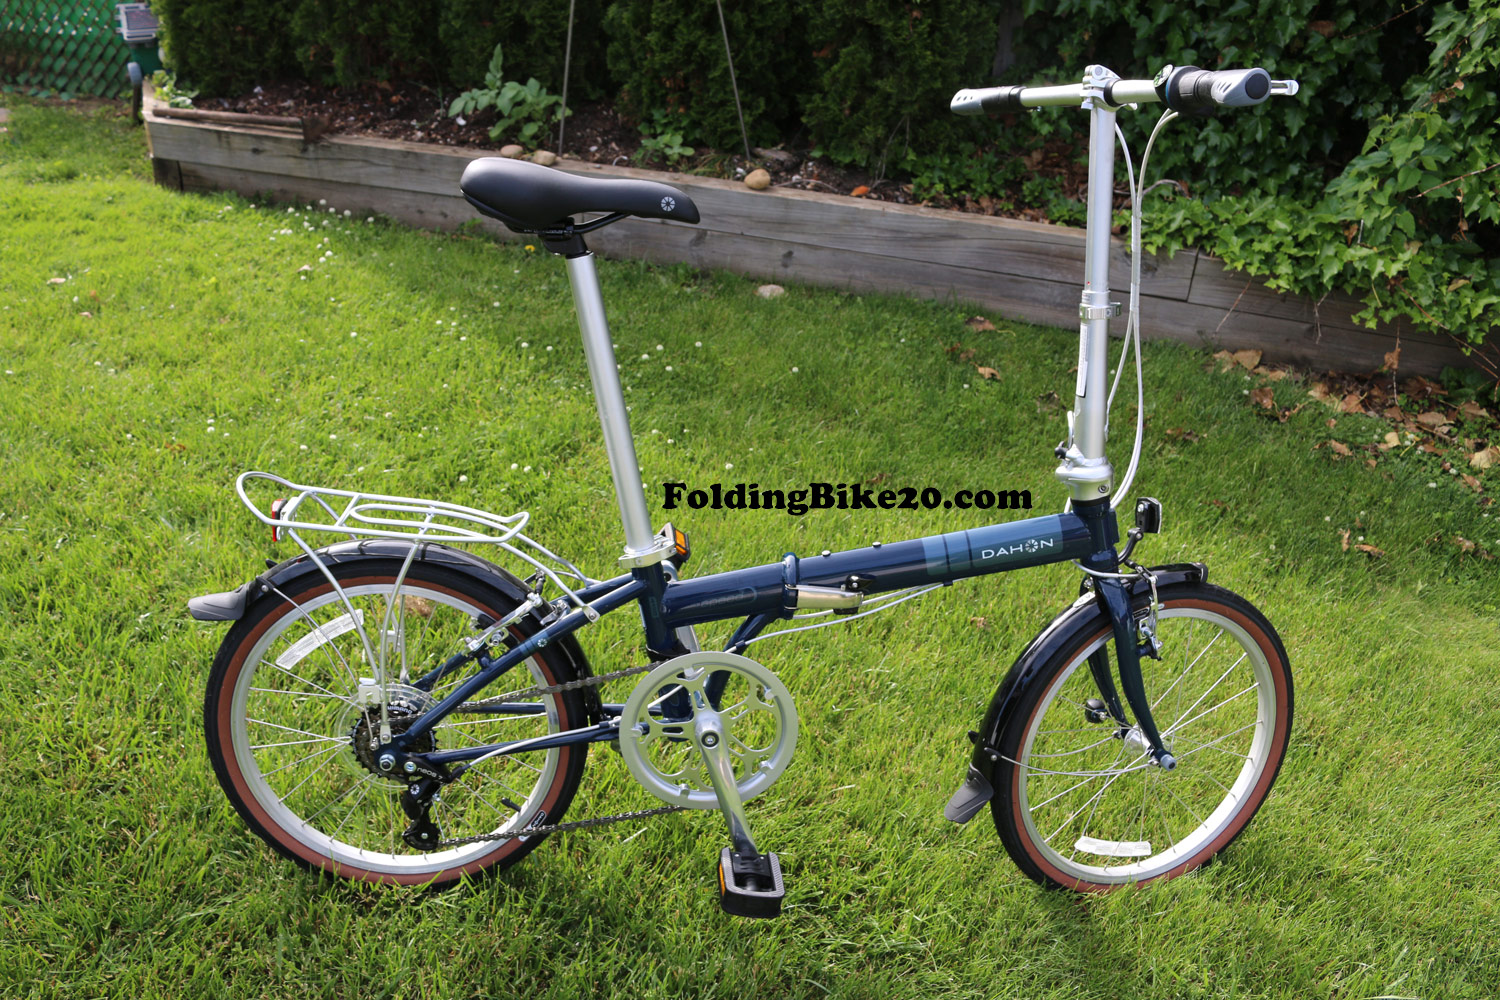 Dahon Speed D7 Folding Bike Review An Easy Compact And